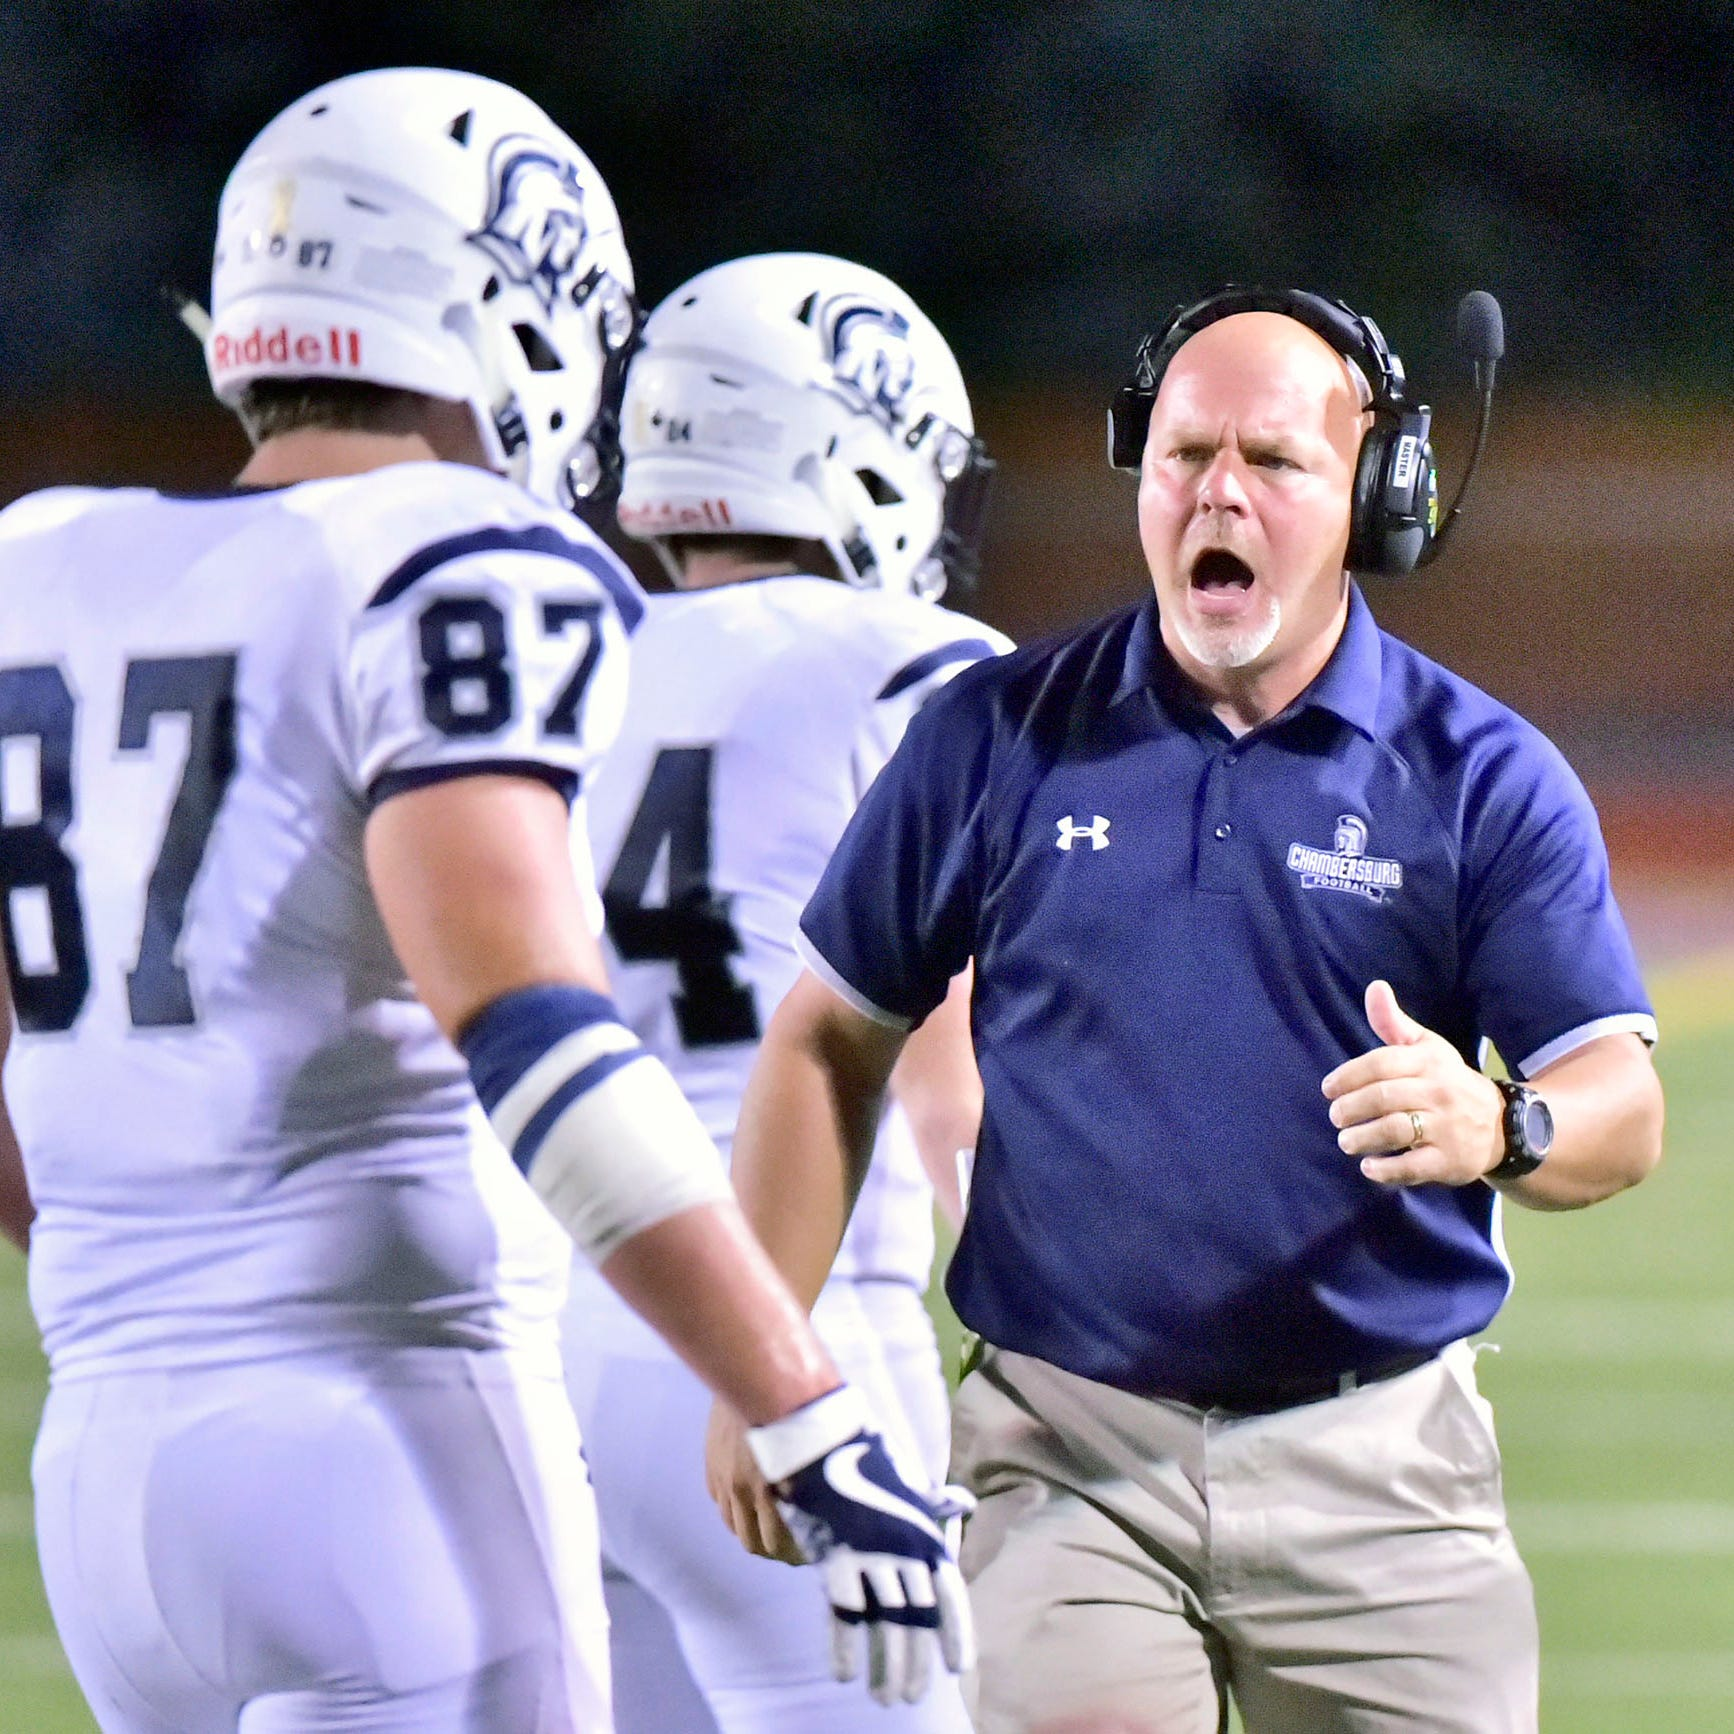 Quick hits: Chambersburg downs Altoona to remain unbeaten